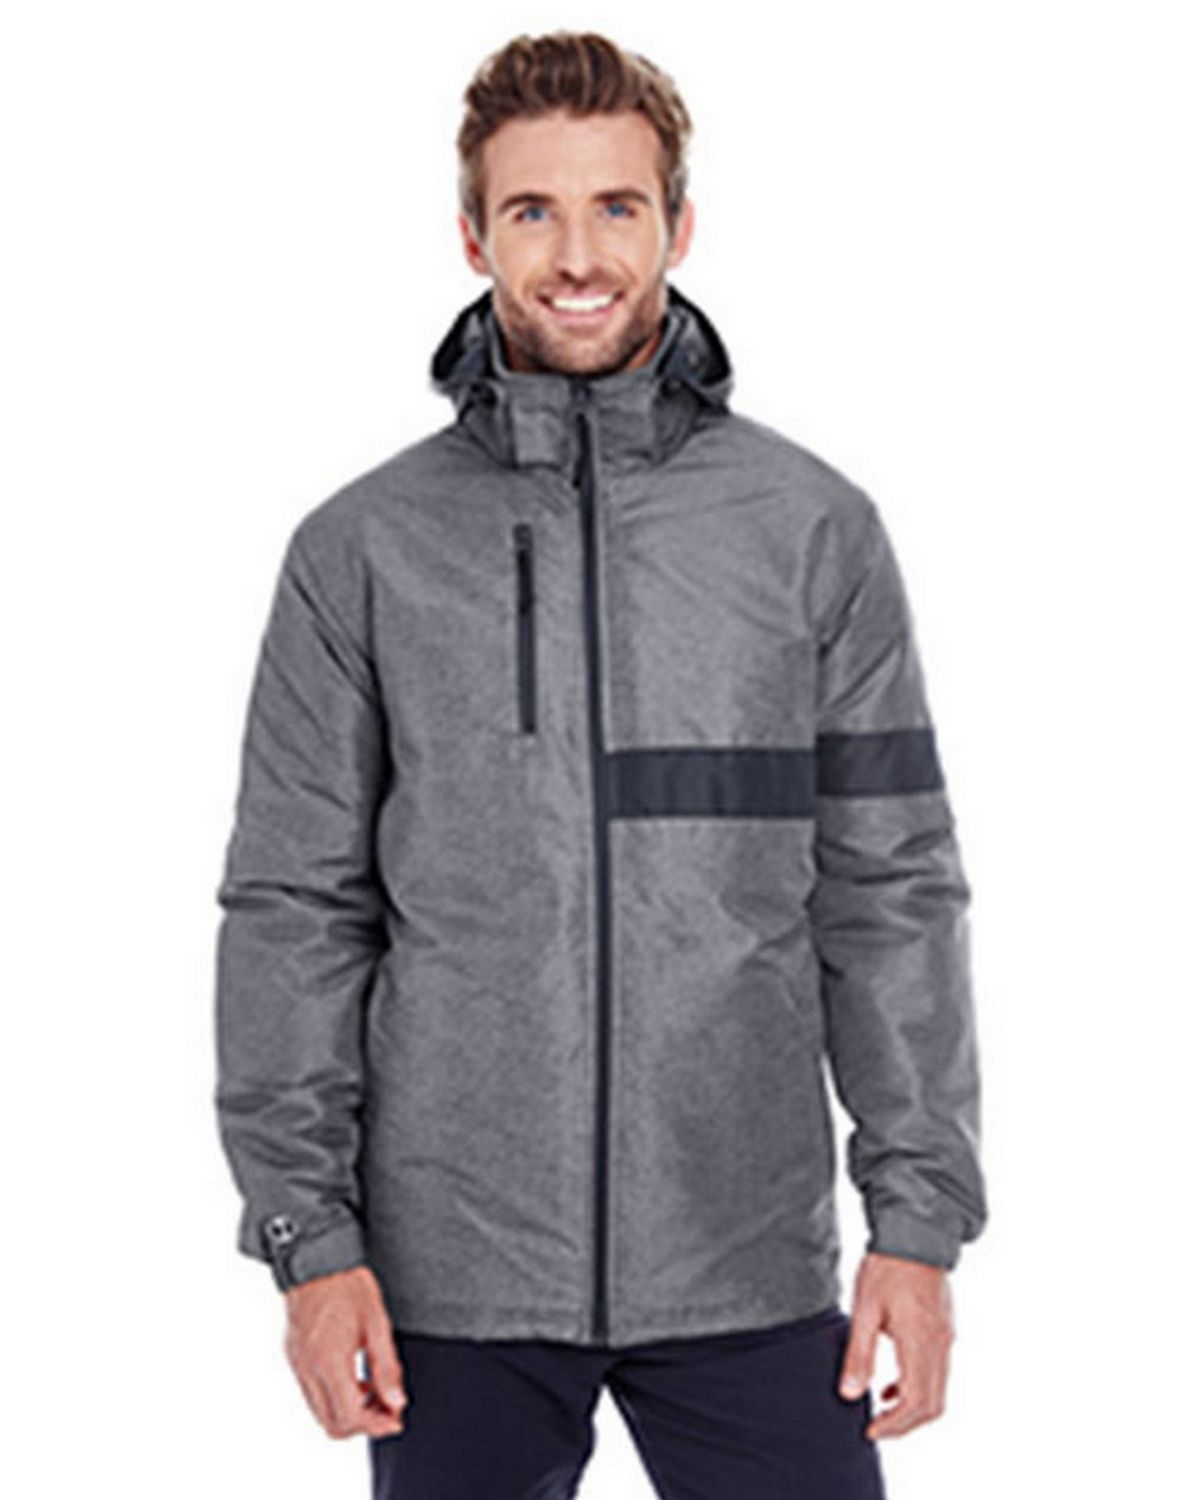 Holloway 229189 Raider Jacket - Carbon Print/Black - S 229189